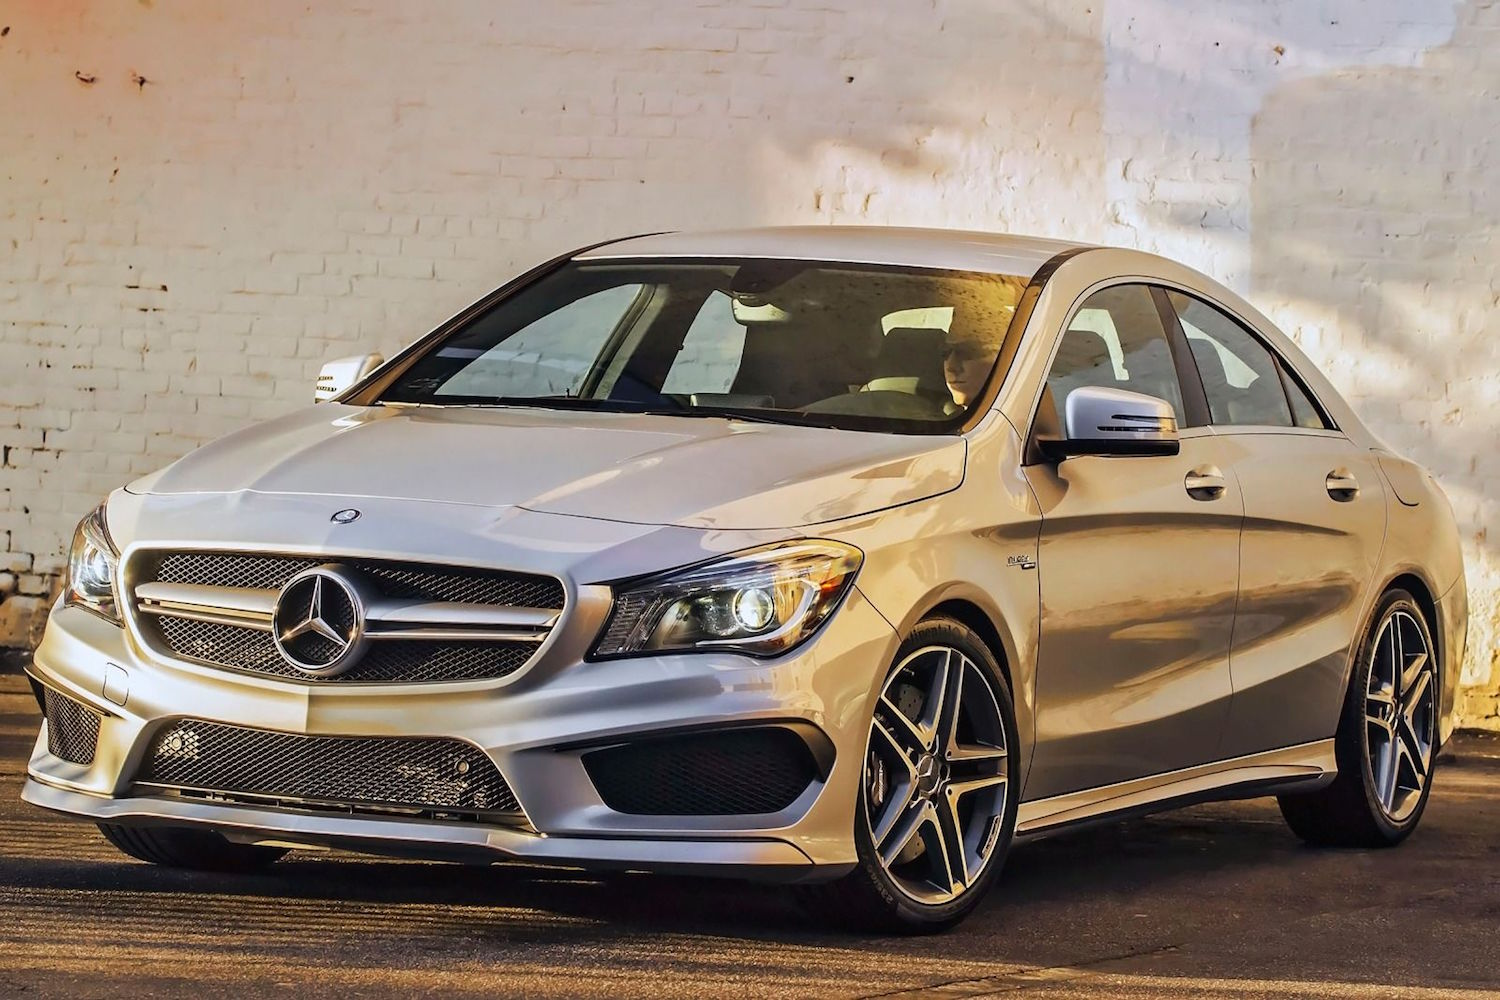 mercedes benz plans a c class based four door coupe to rival bmw s 4 series gran coupe. Black Bedroom Furniture Sets. Home Design Ideas